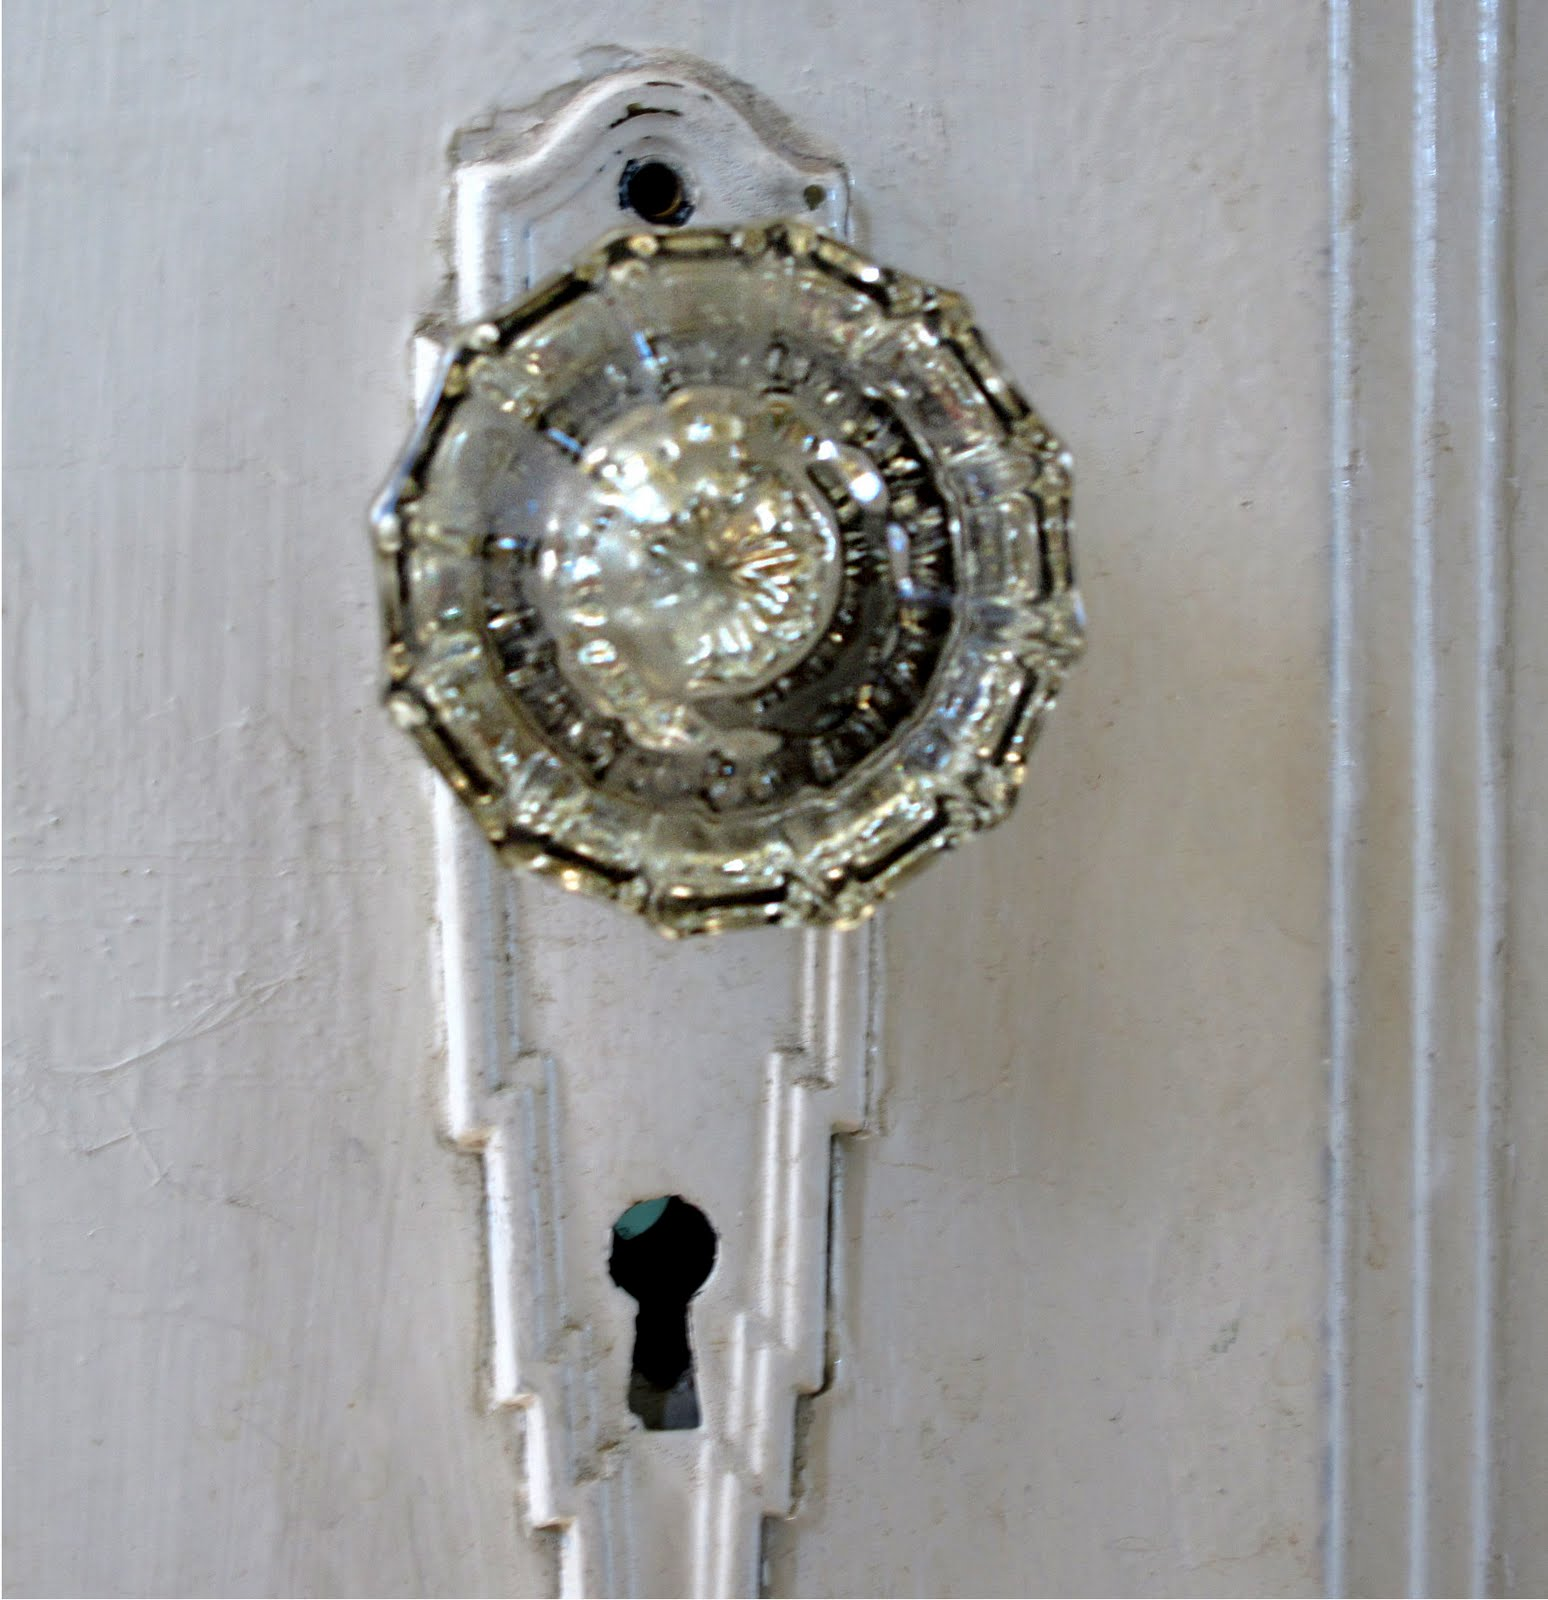 Crystal Clear Door Knobs Amore Linguine And Me